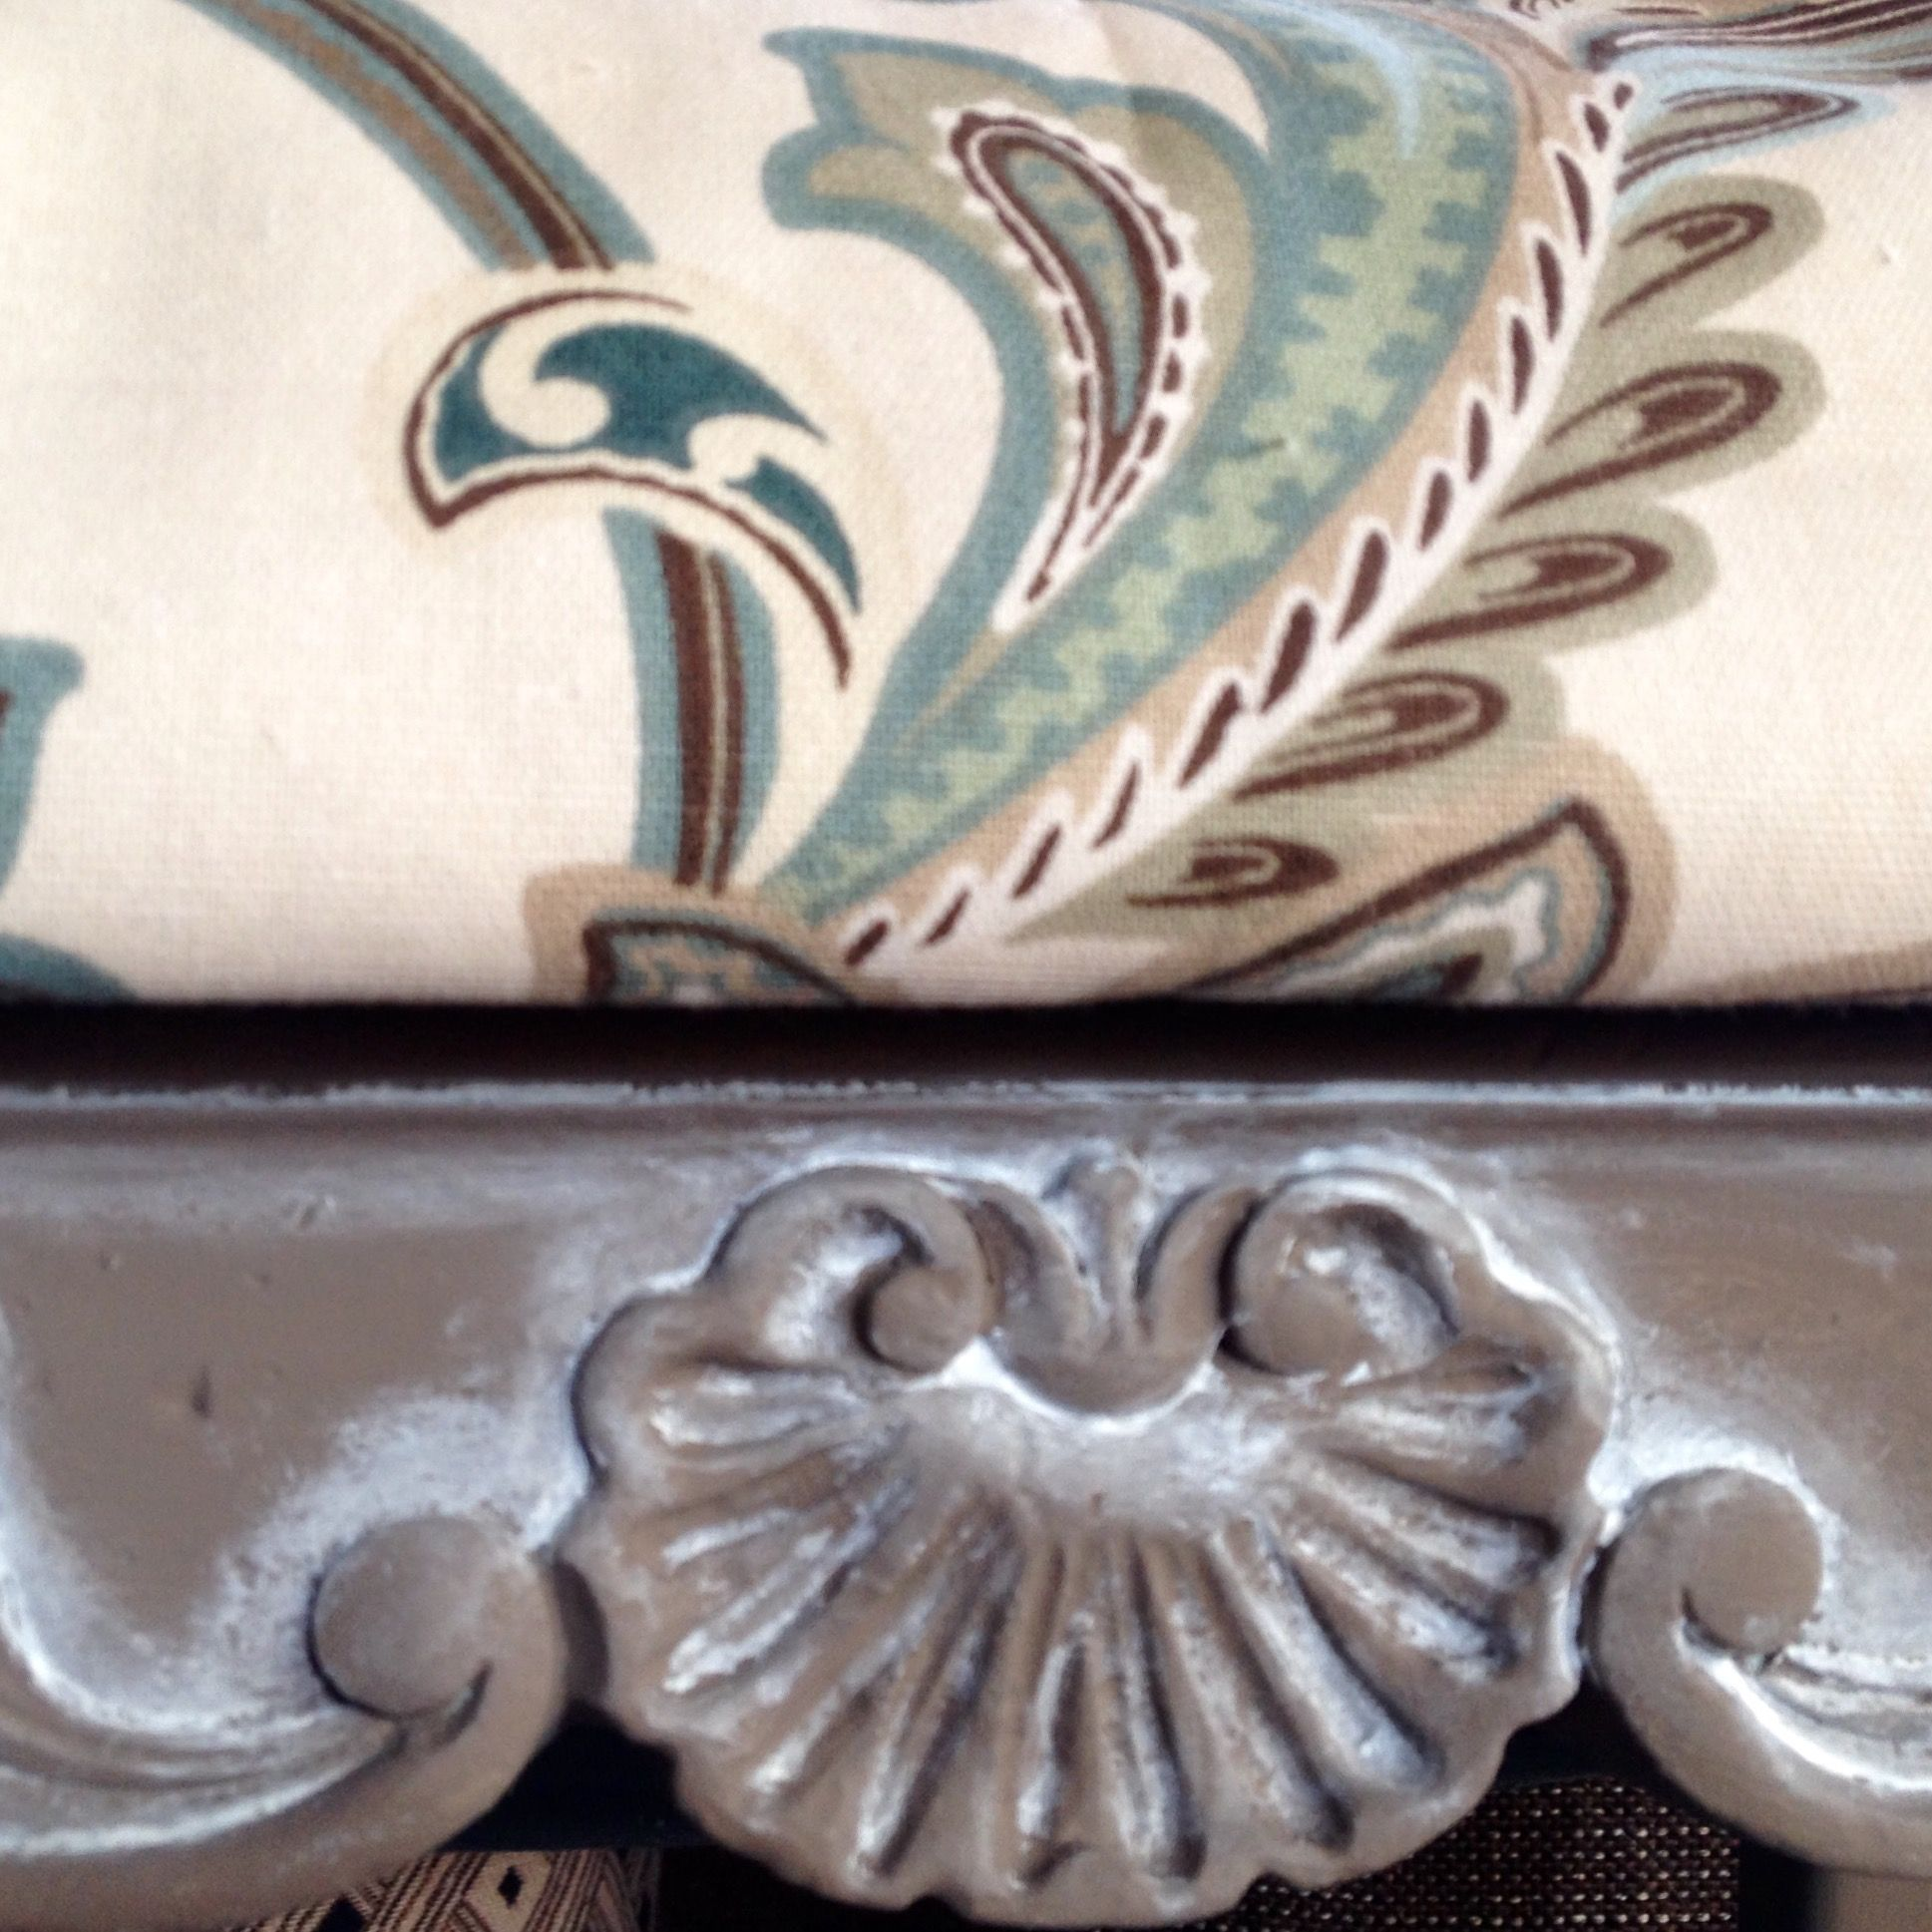 Upclose of the cardamon brown chalk style paint and white glaze used